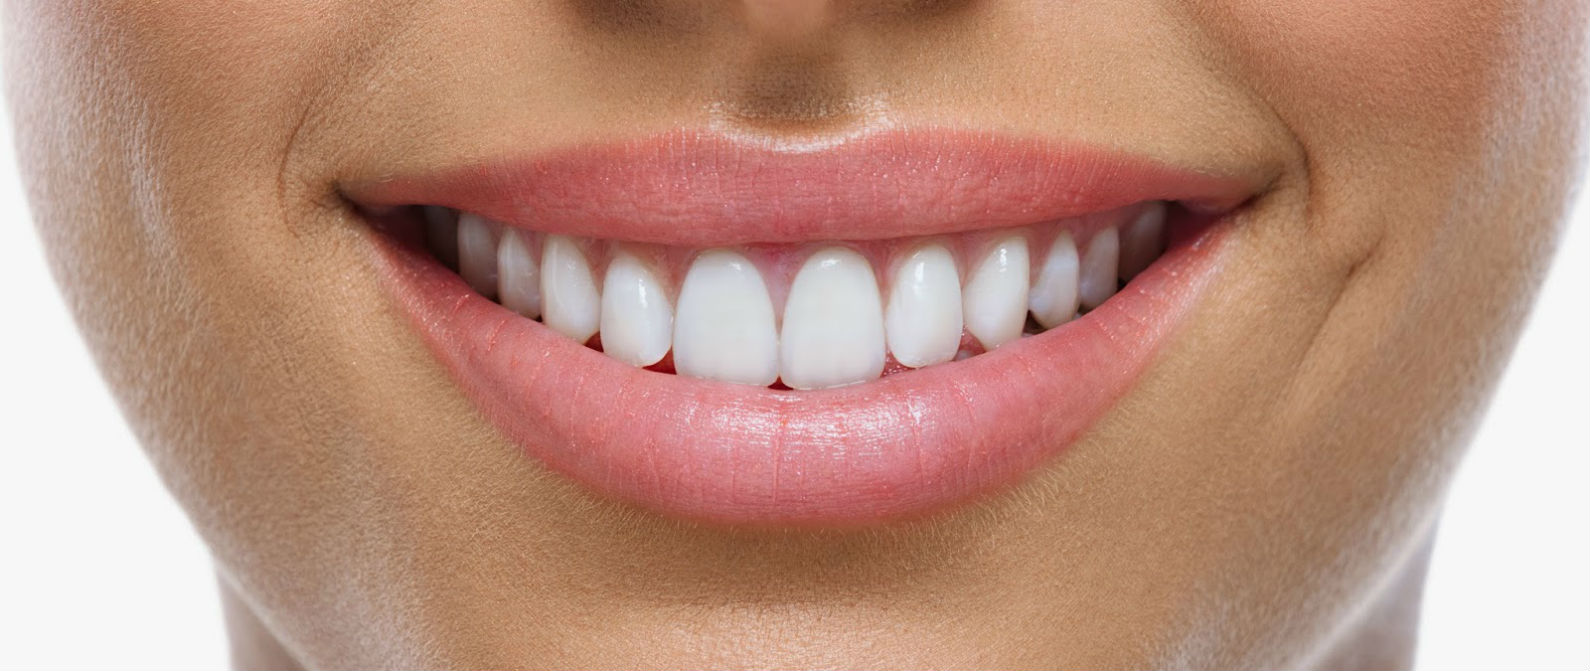 Beneficios de las carillas dentales